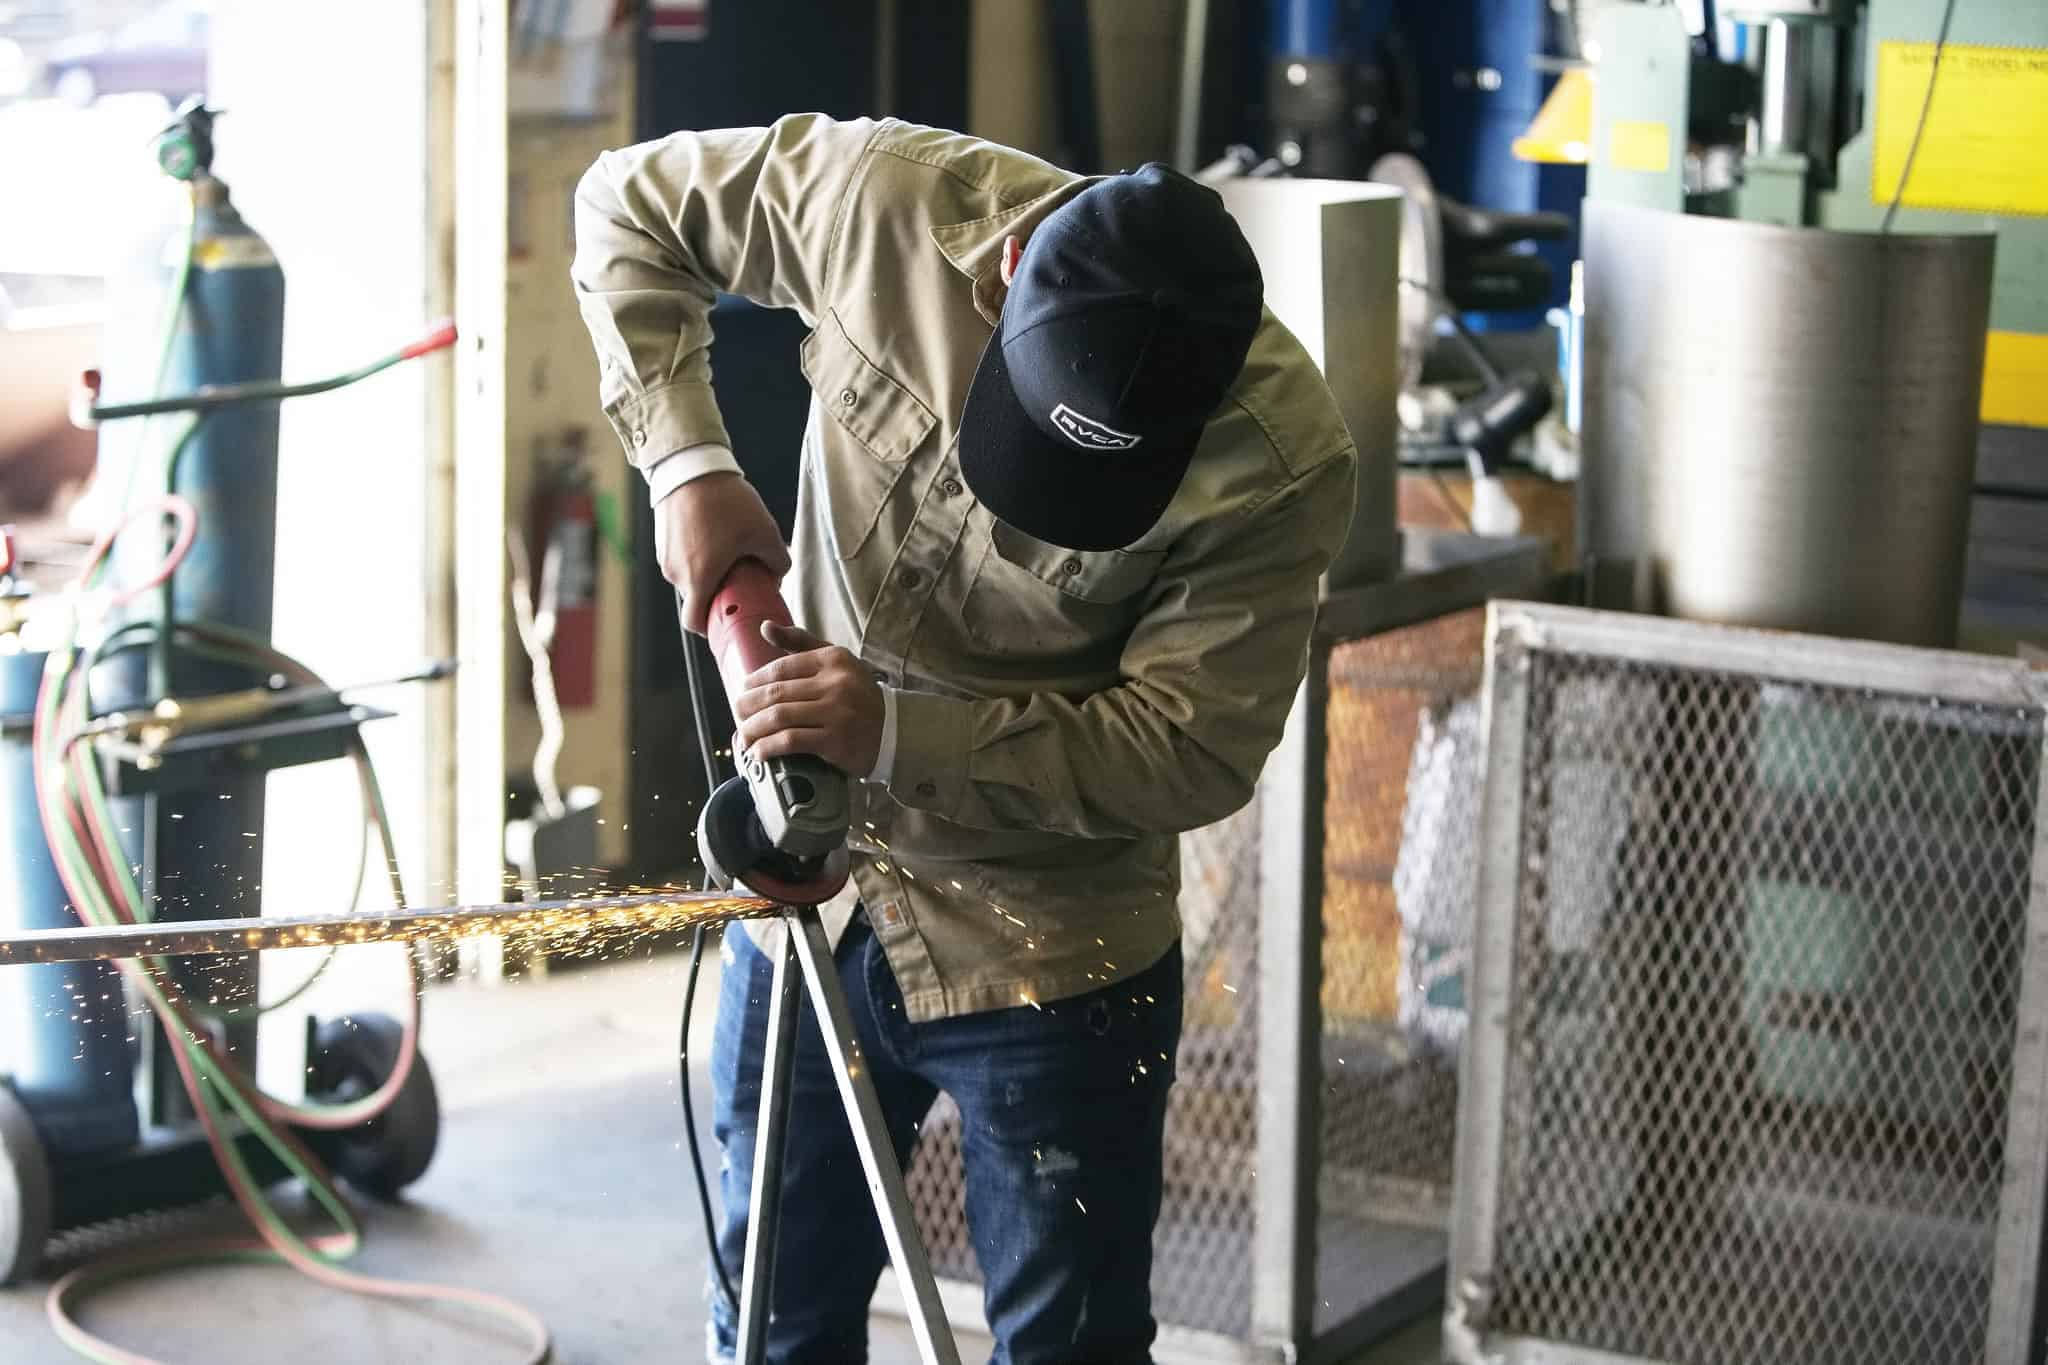 A student welding at the Career Development Center